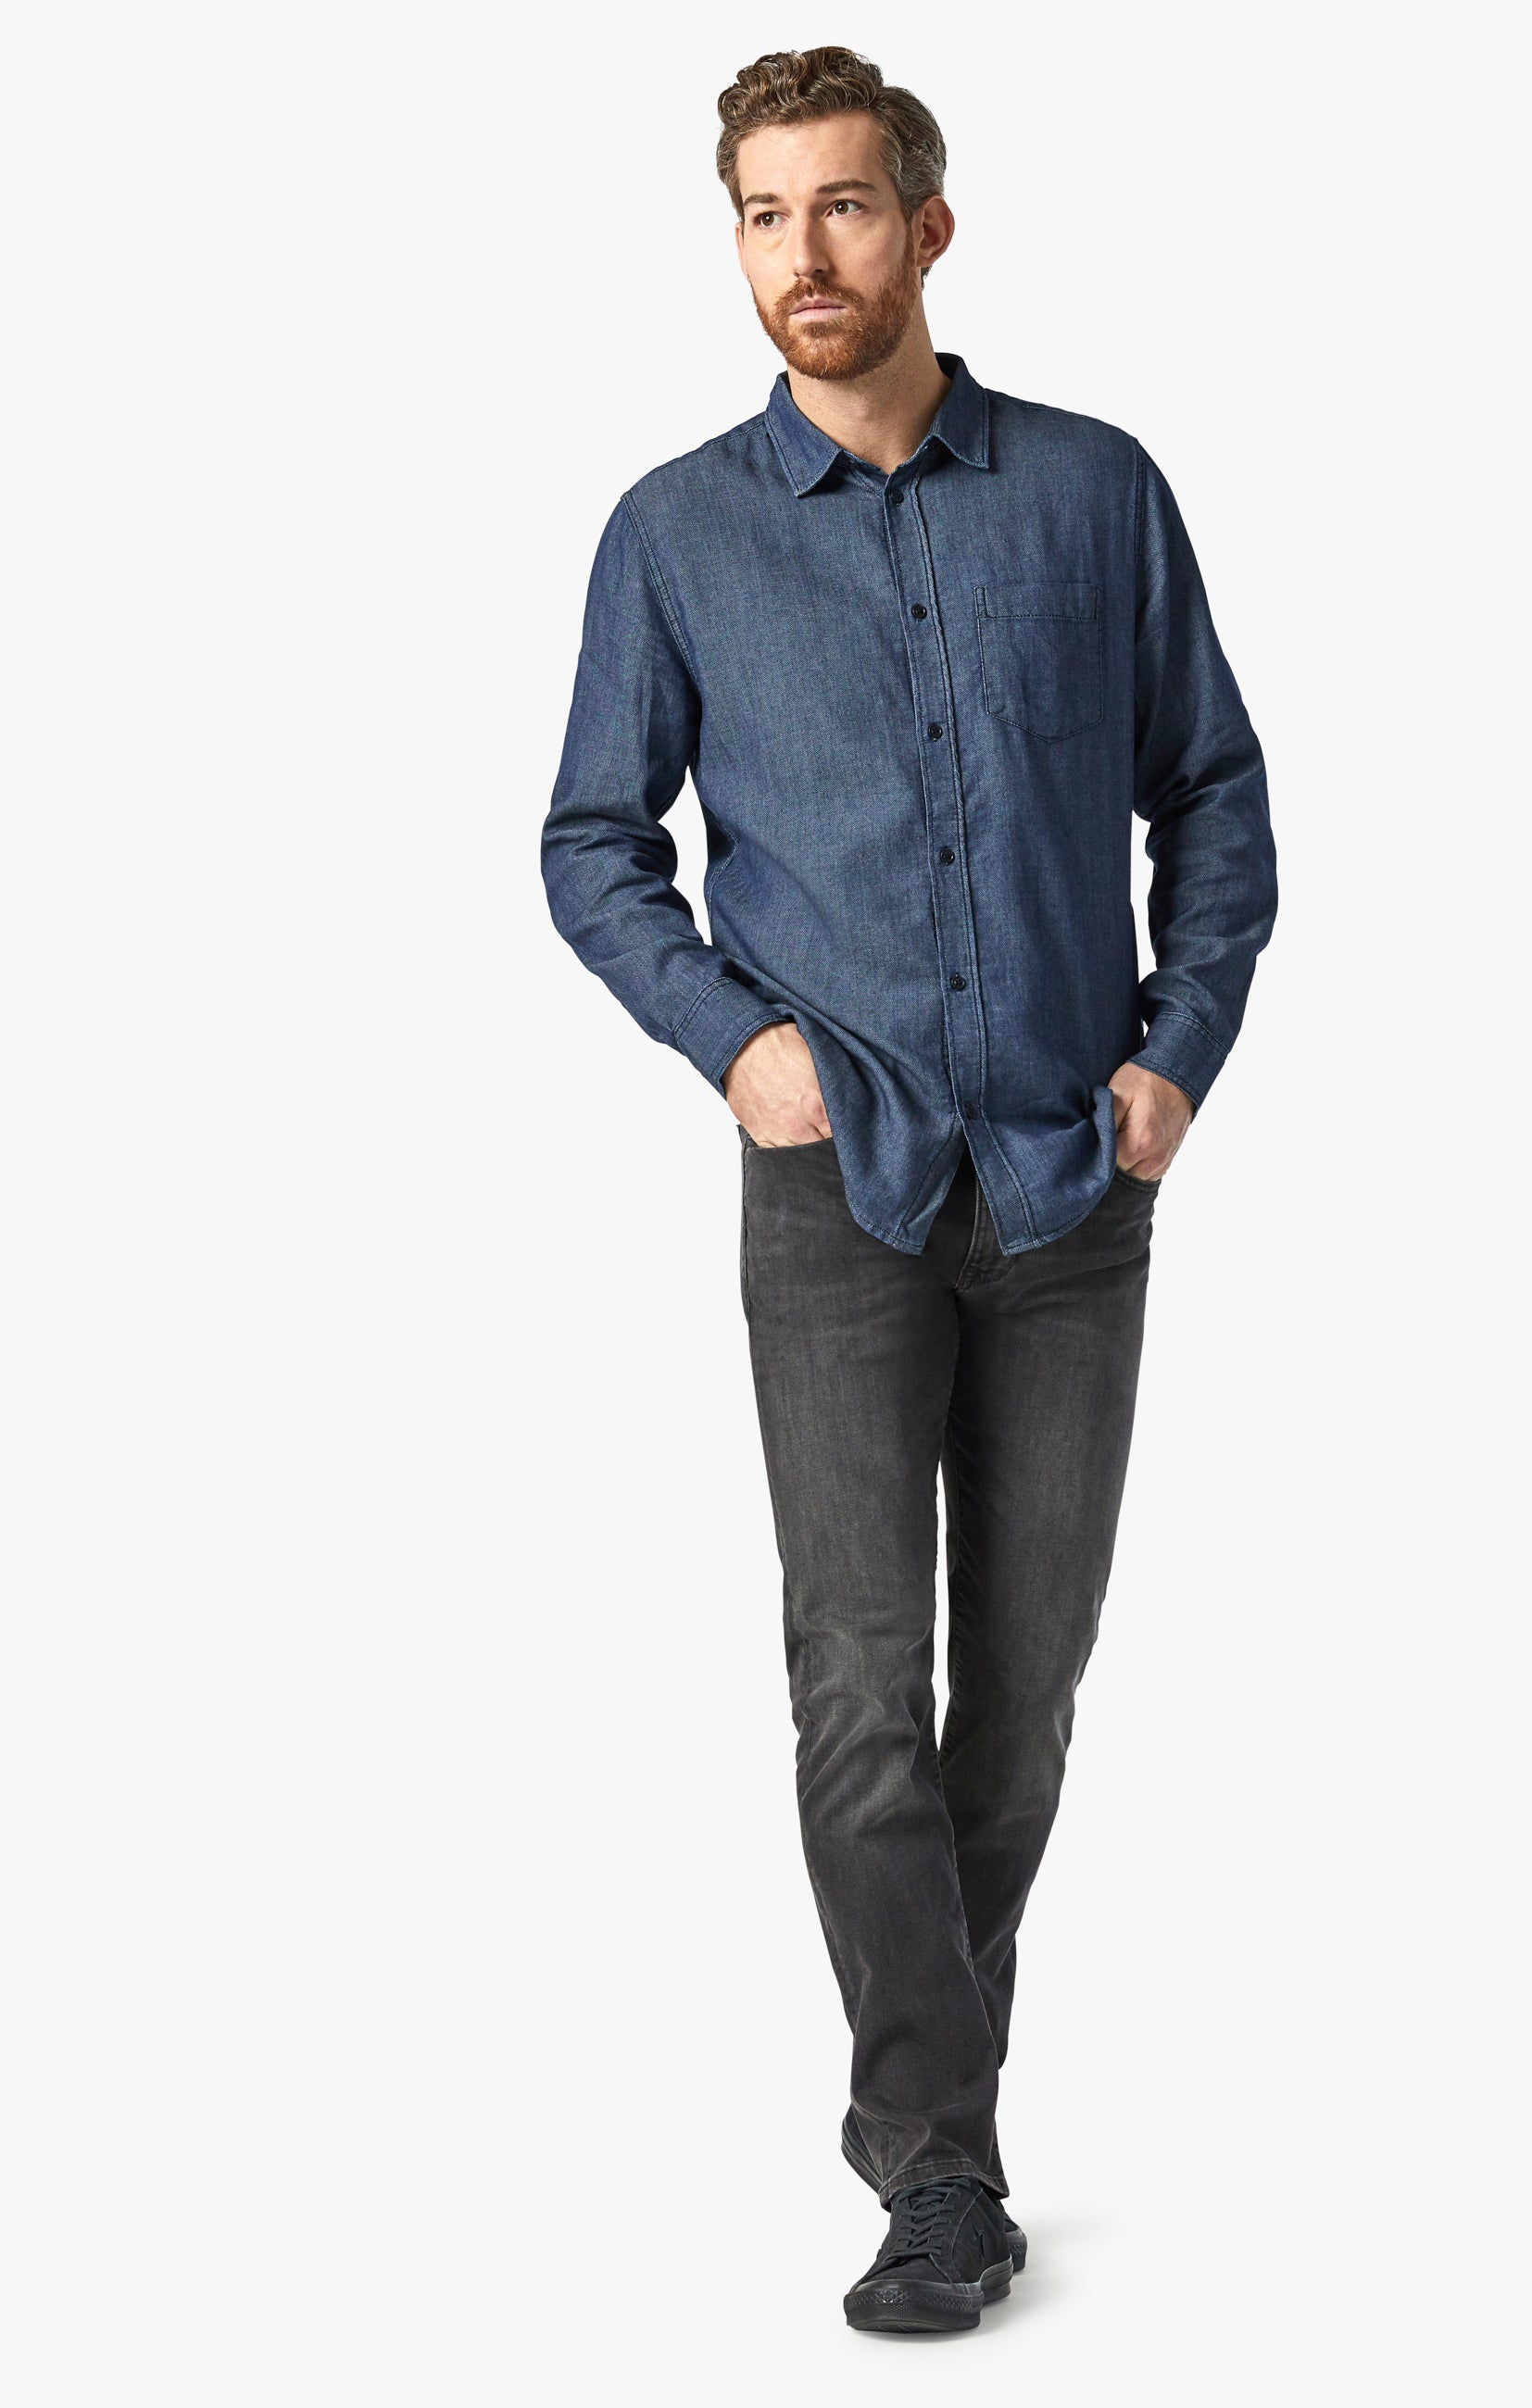 Chris Denim Shirt In Rinse Image 2